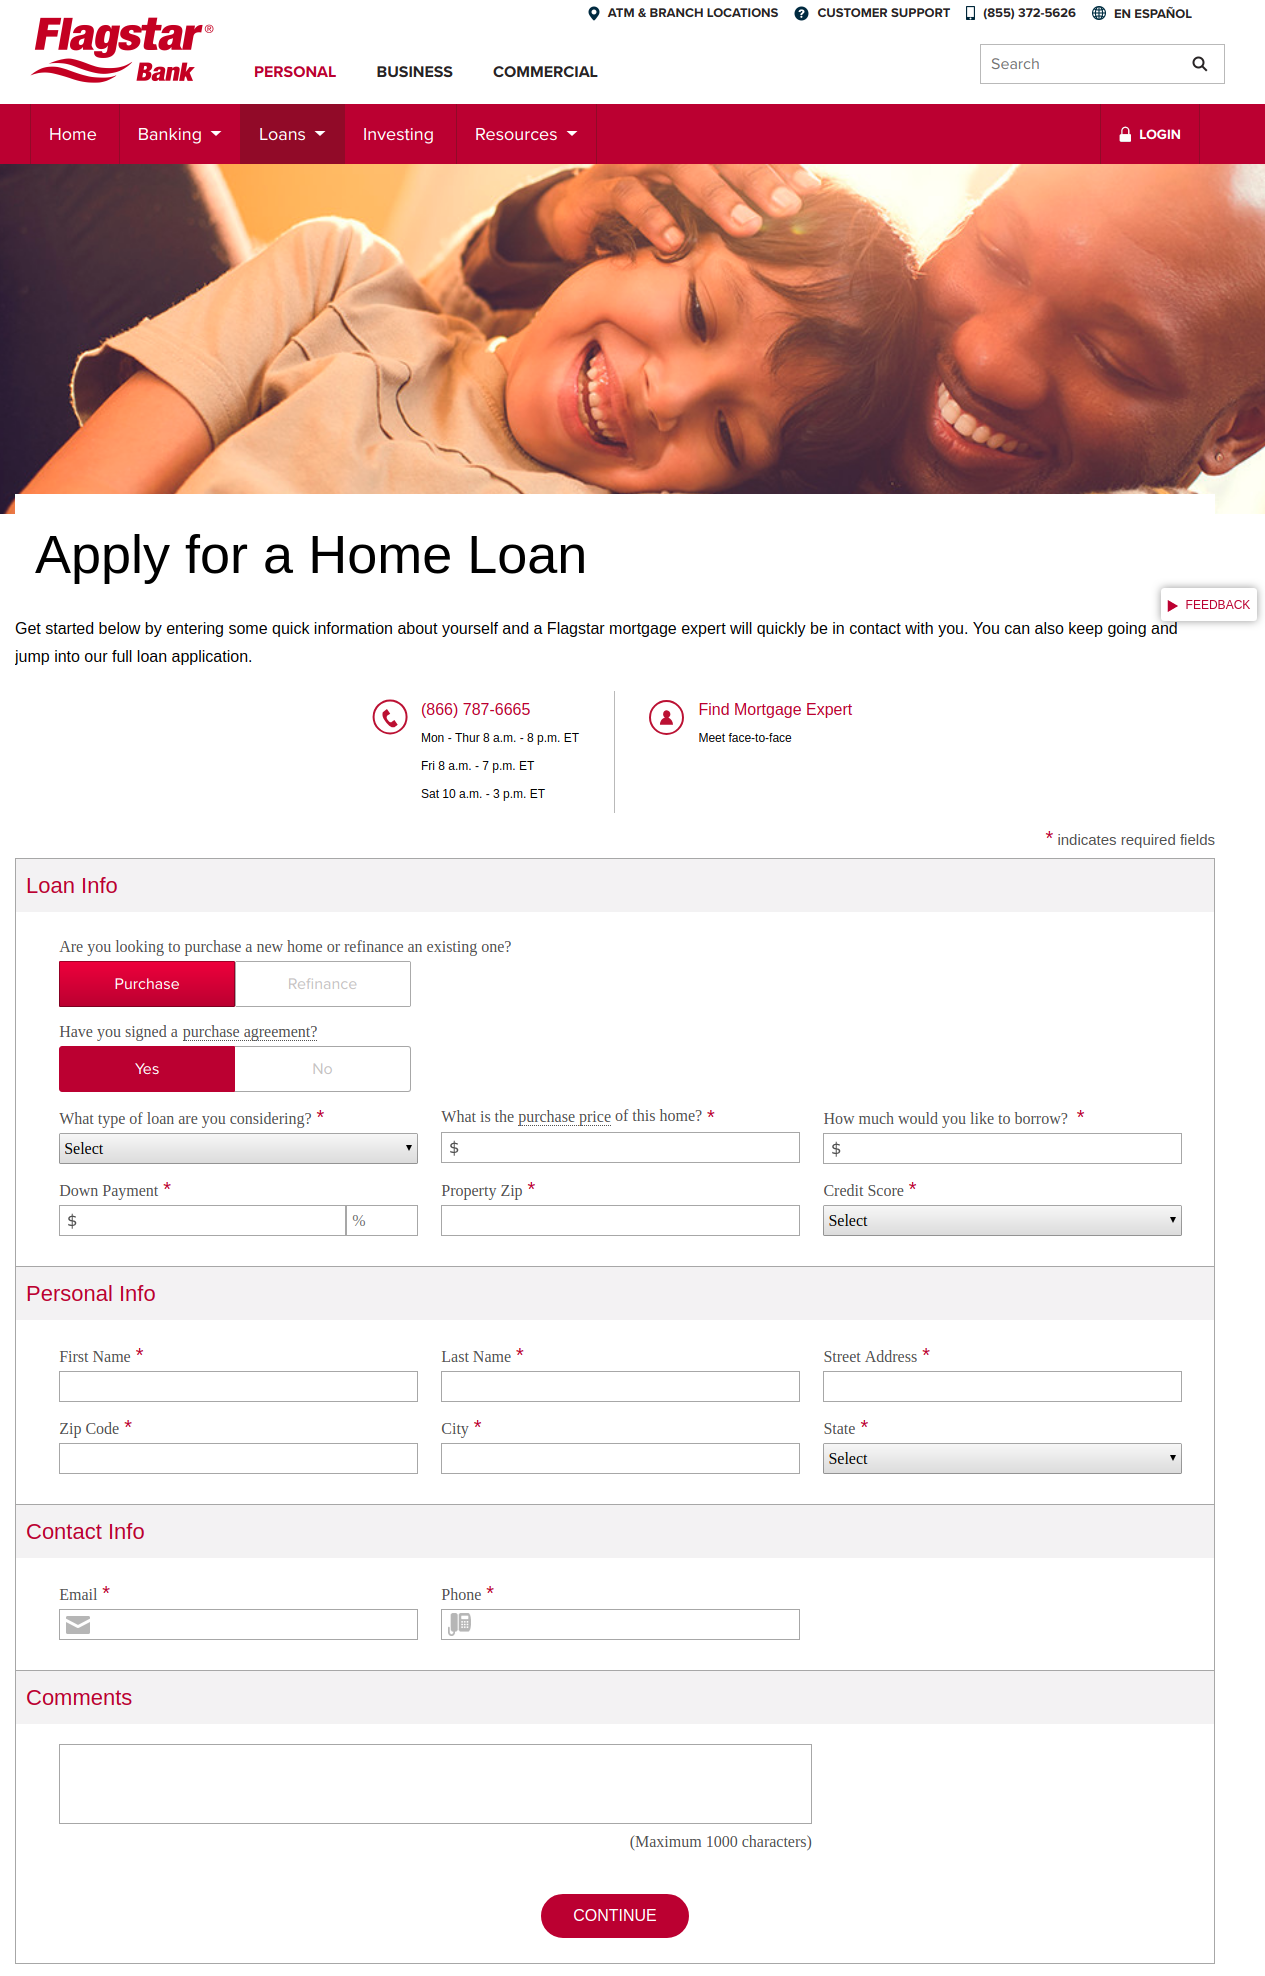 Apply for a Home Loan Flagstar Bank